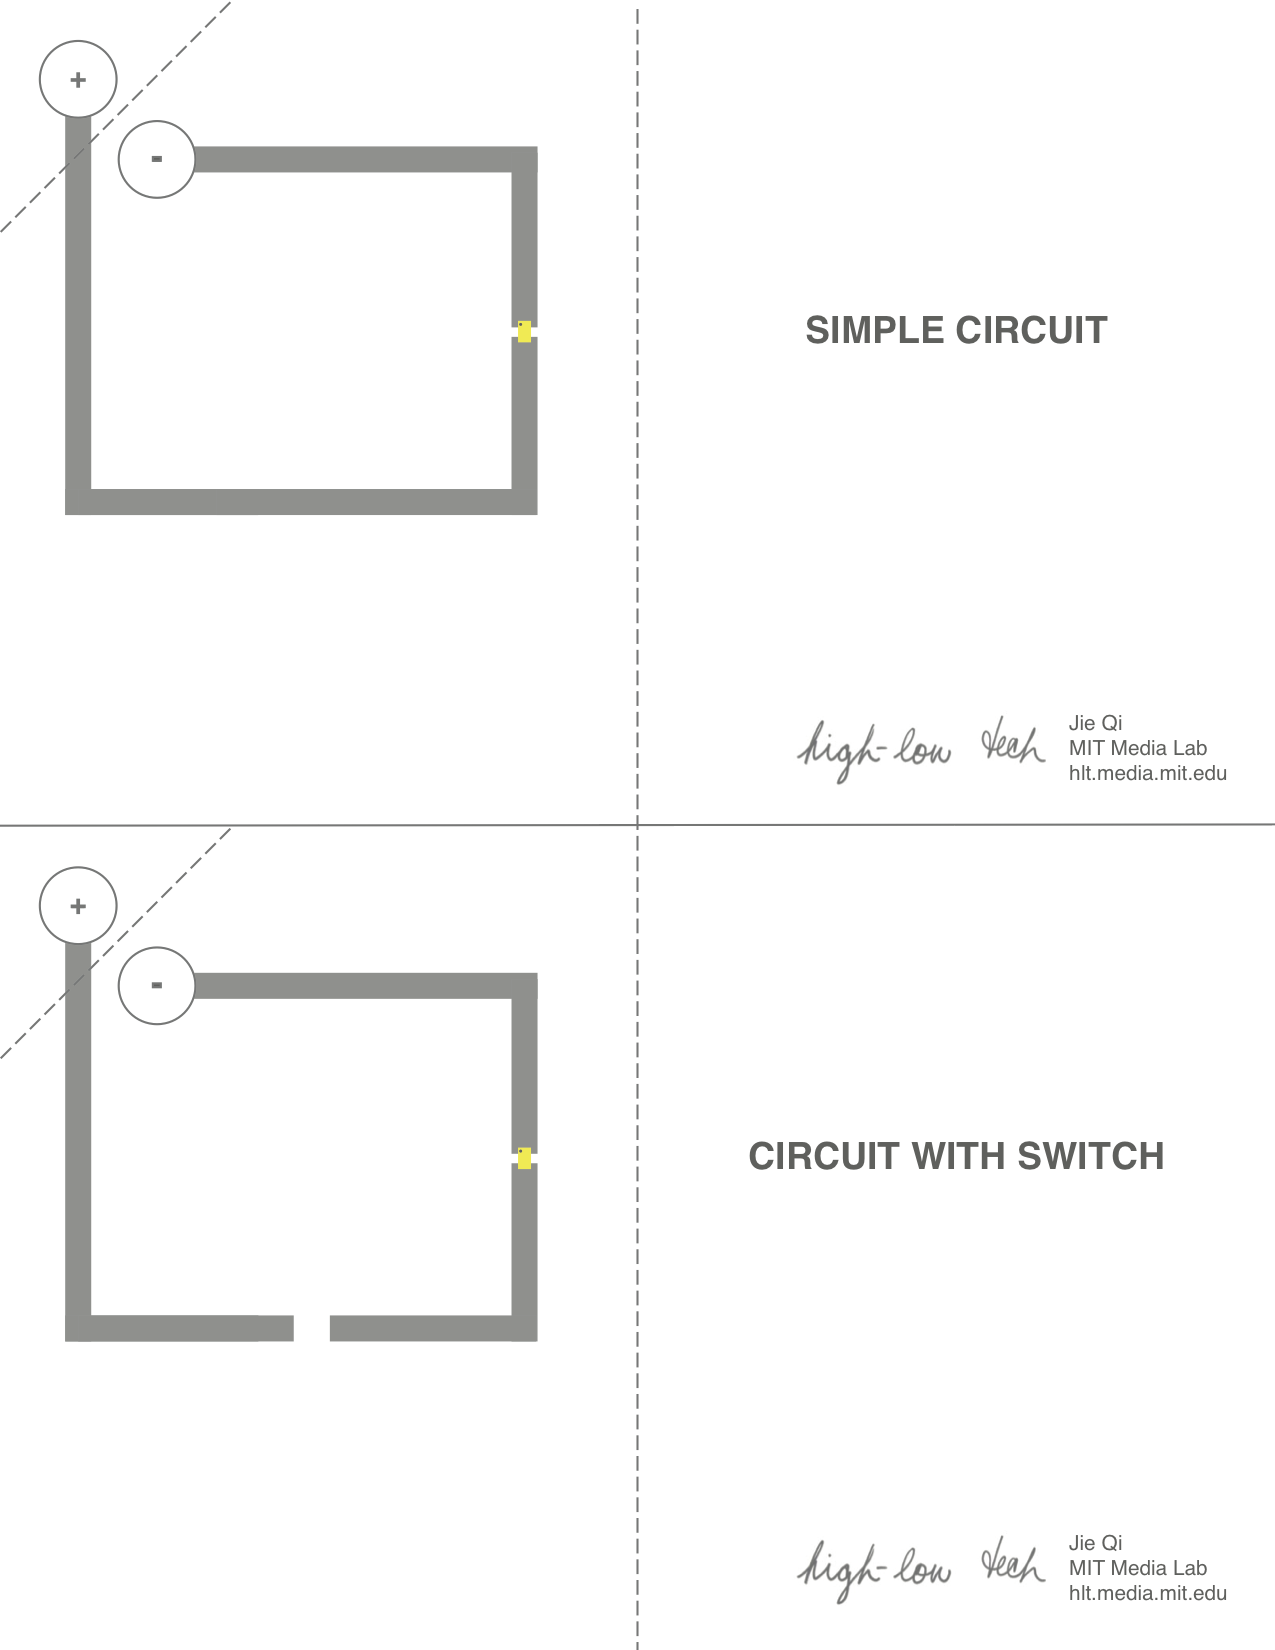 High Low Tech Paper Circuits Parallel Simple 3 Way Switch Wiring Diagram Circuit Electrical Connections